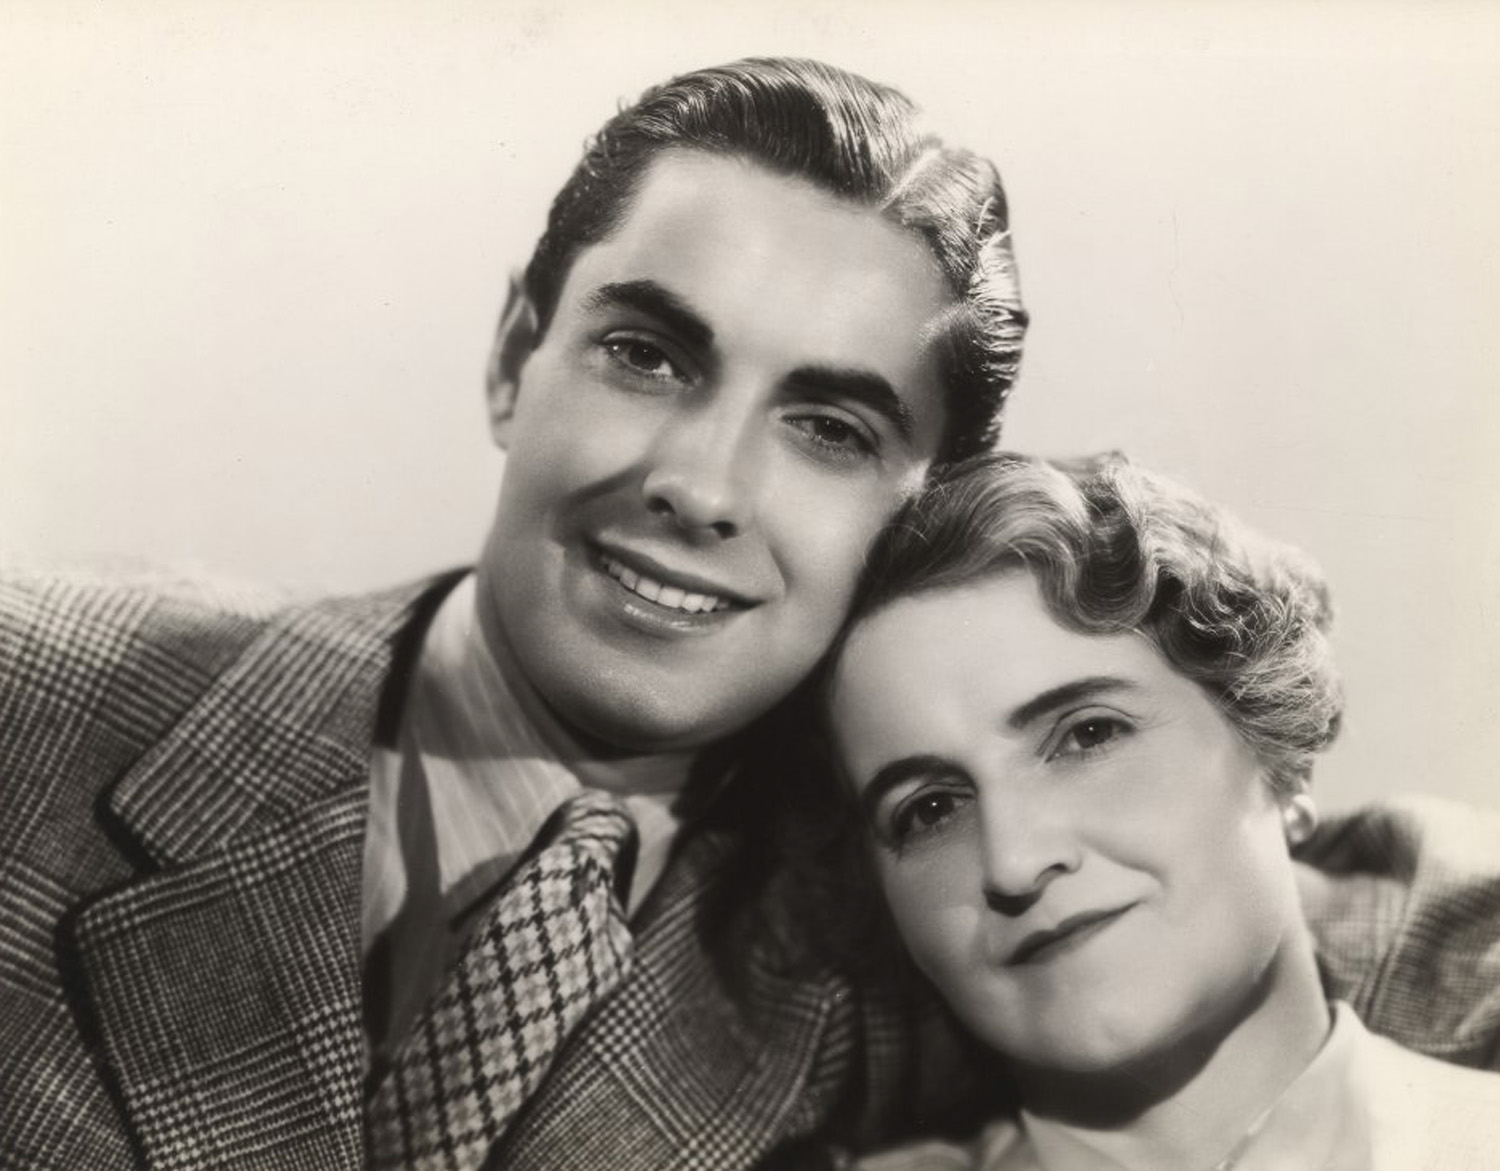 Tyrone Power, Jr. With his mother, Patia Power